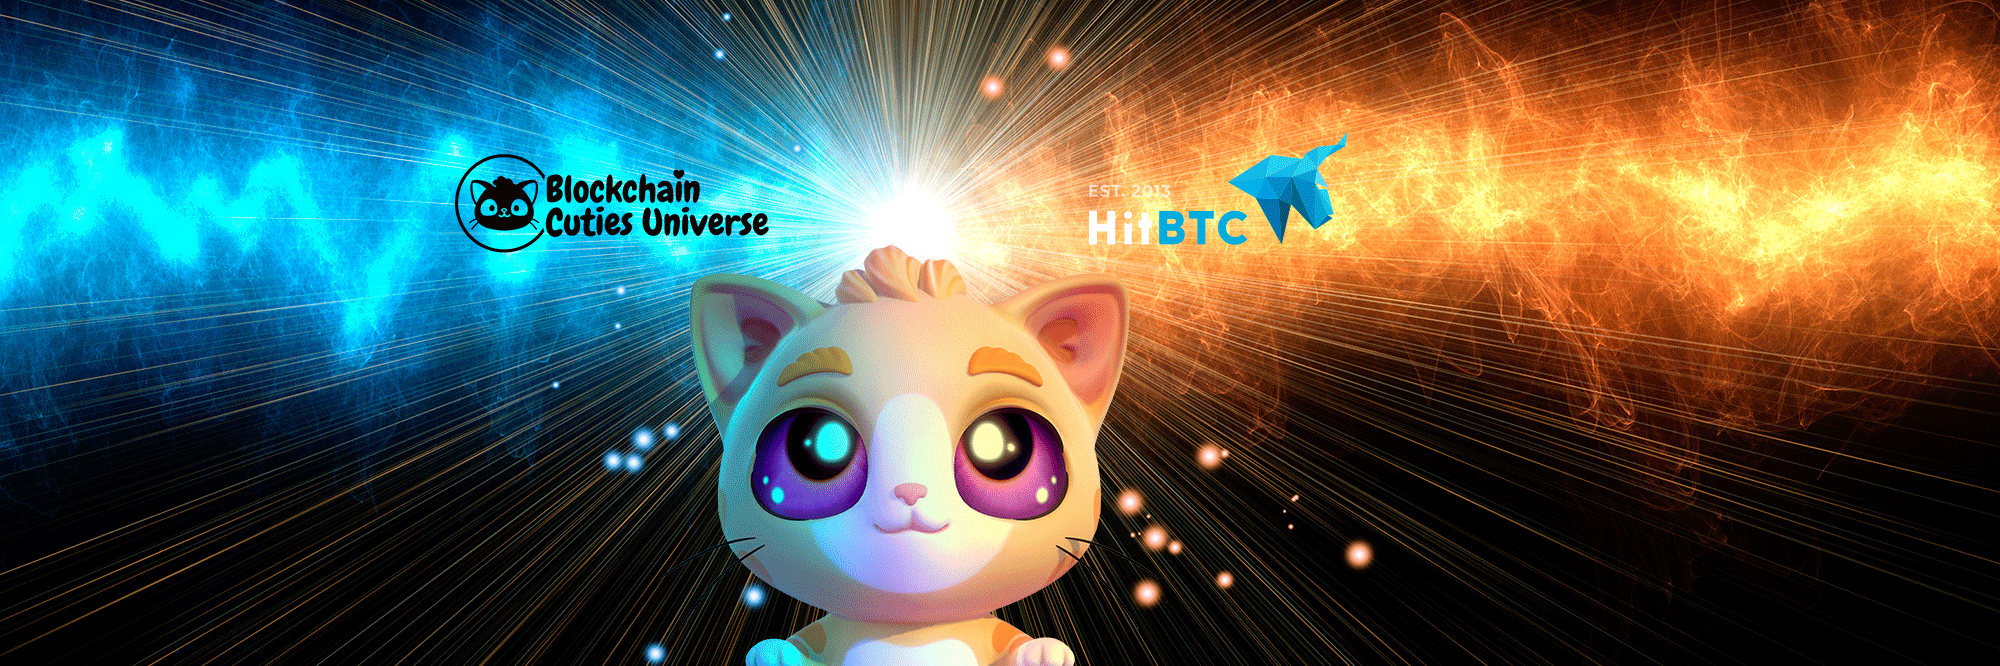 April 2019 will be looked back upon as a crucial month for blockchain gaming as the first multi-blockchain crypto-collectible game